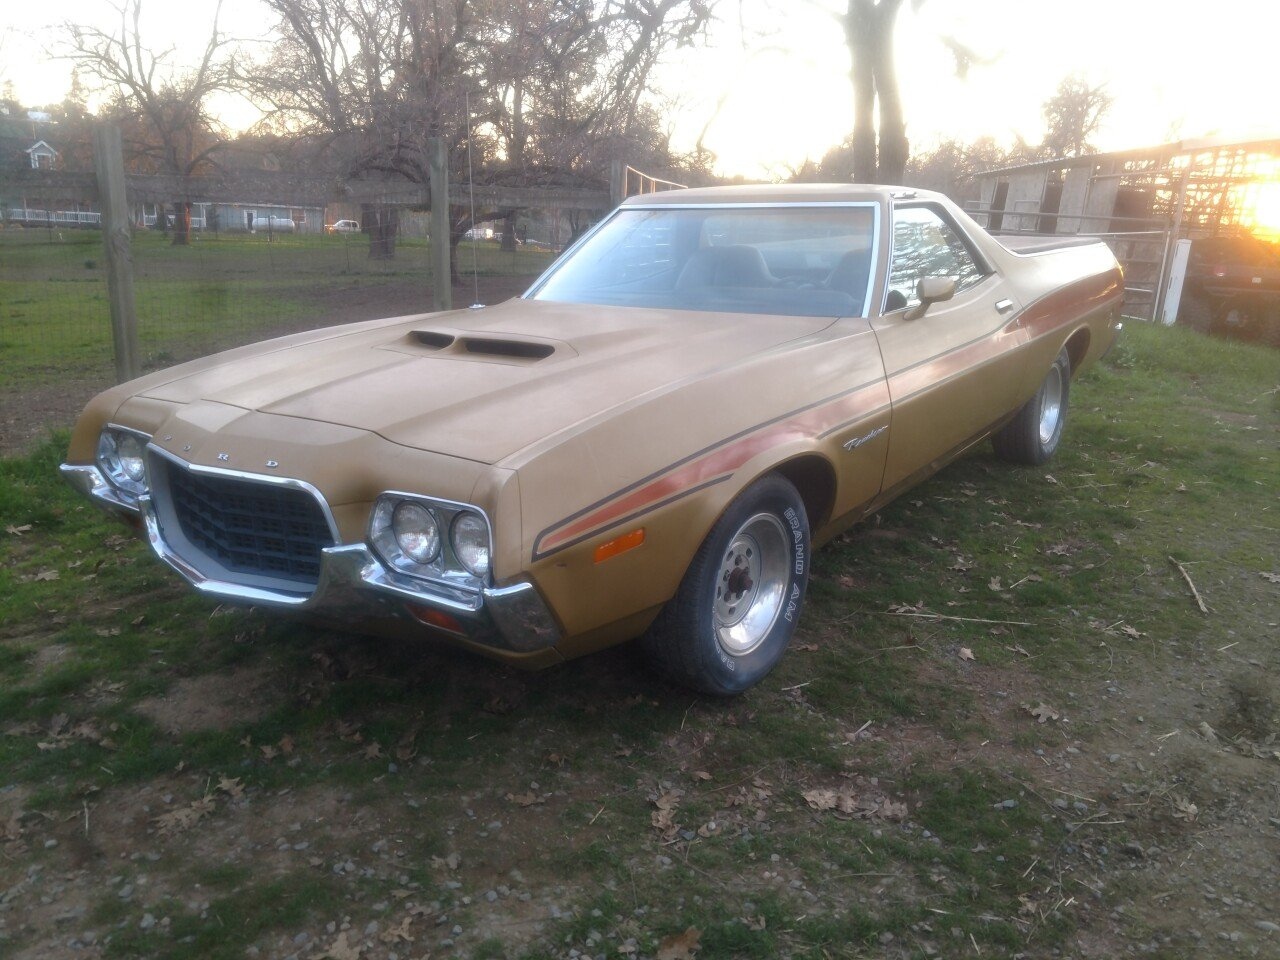 Classic Cars For Sale Auto Trader Com: 1972 Ford Ranchero For Sale Near Somerset, California